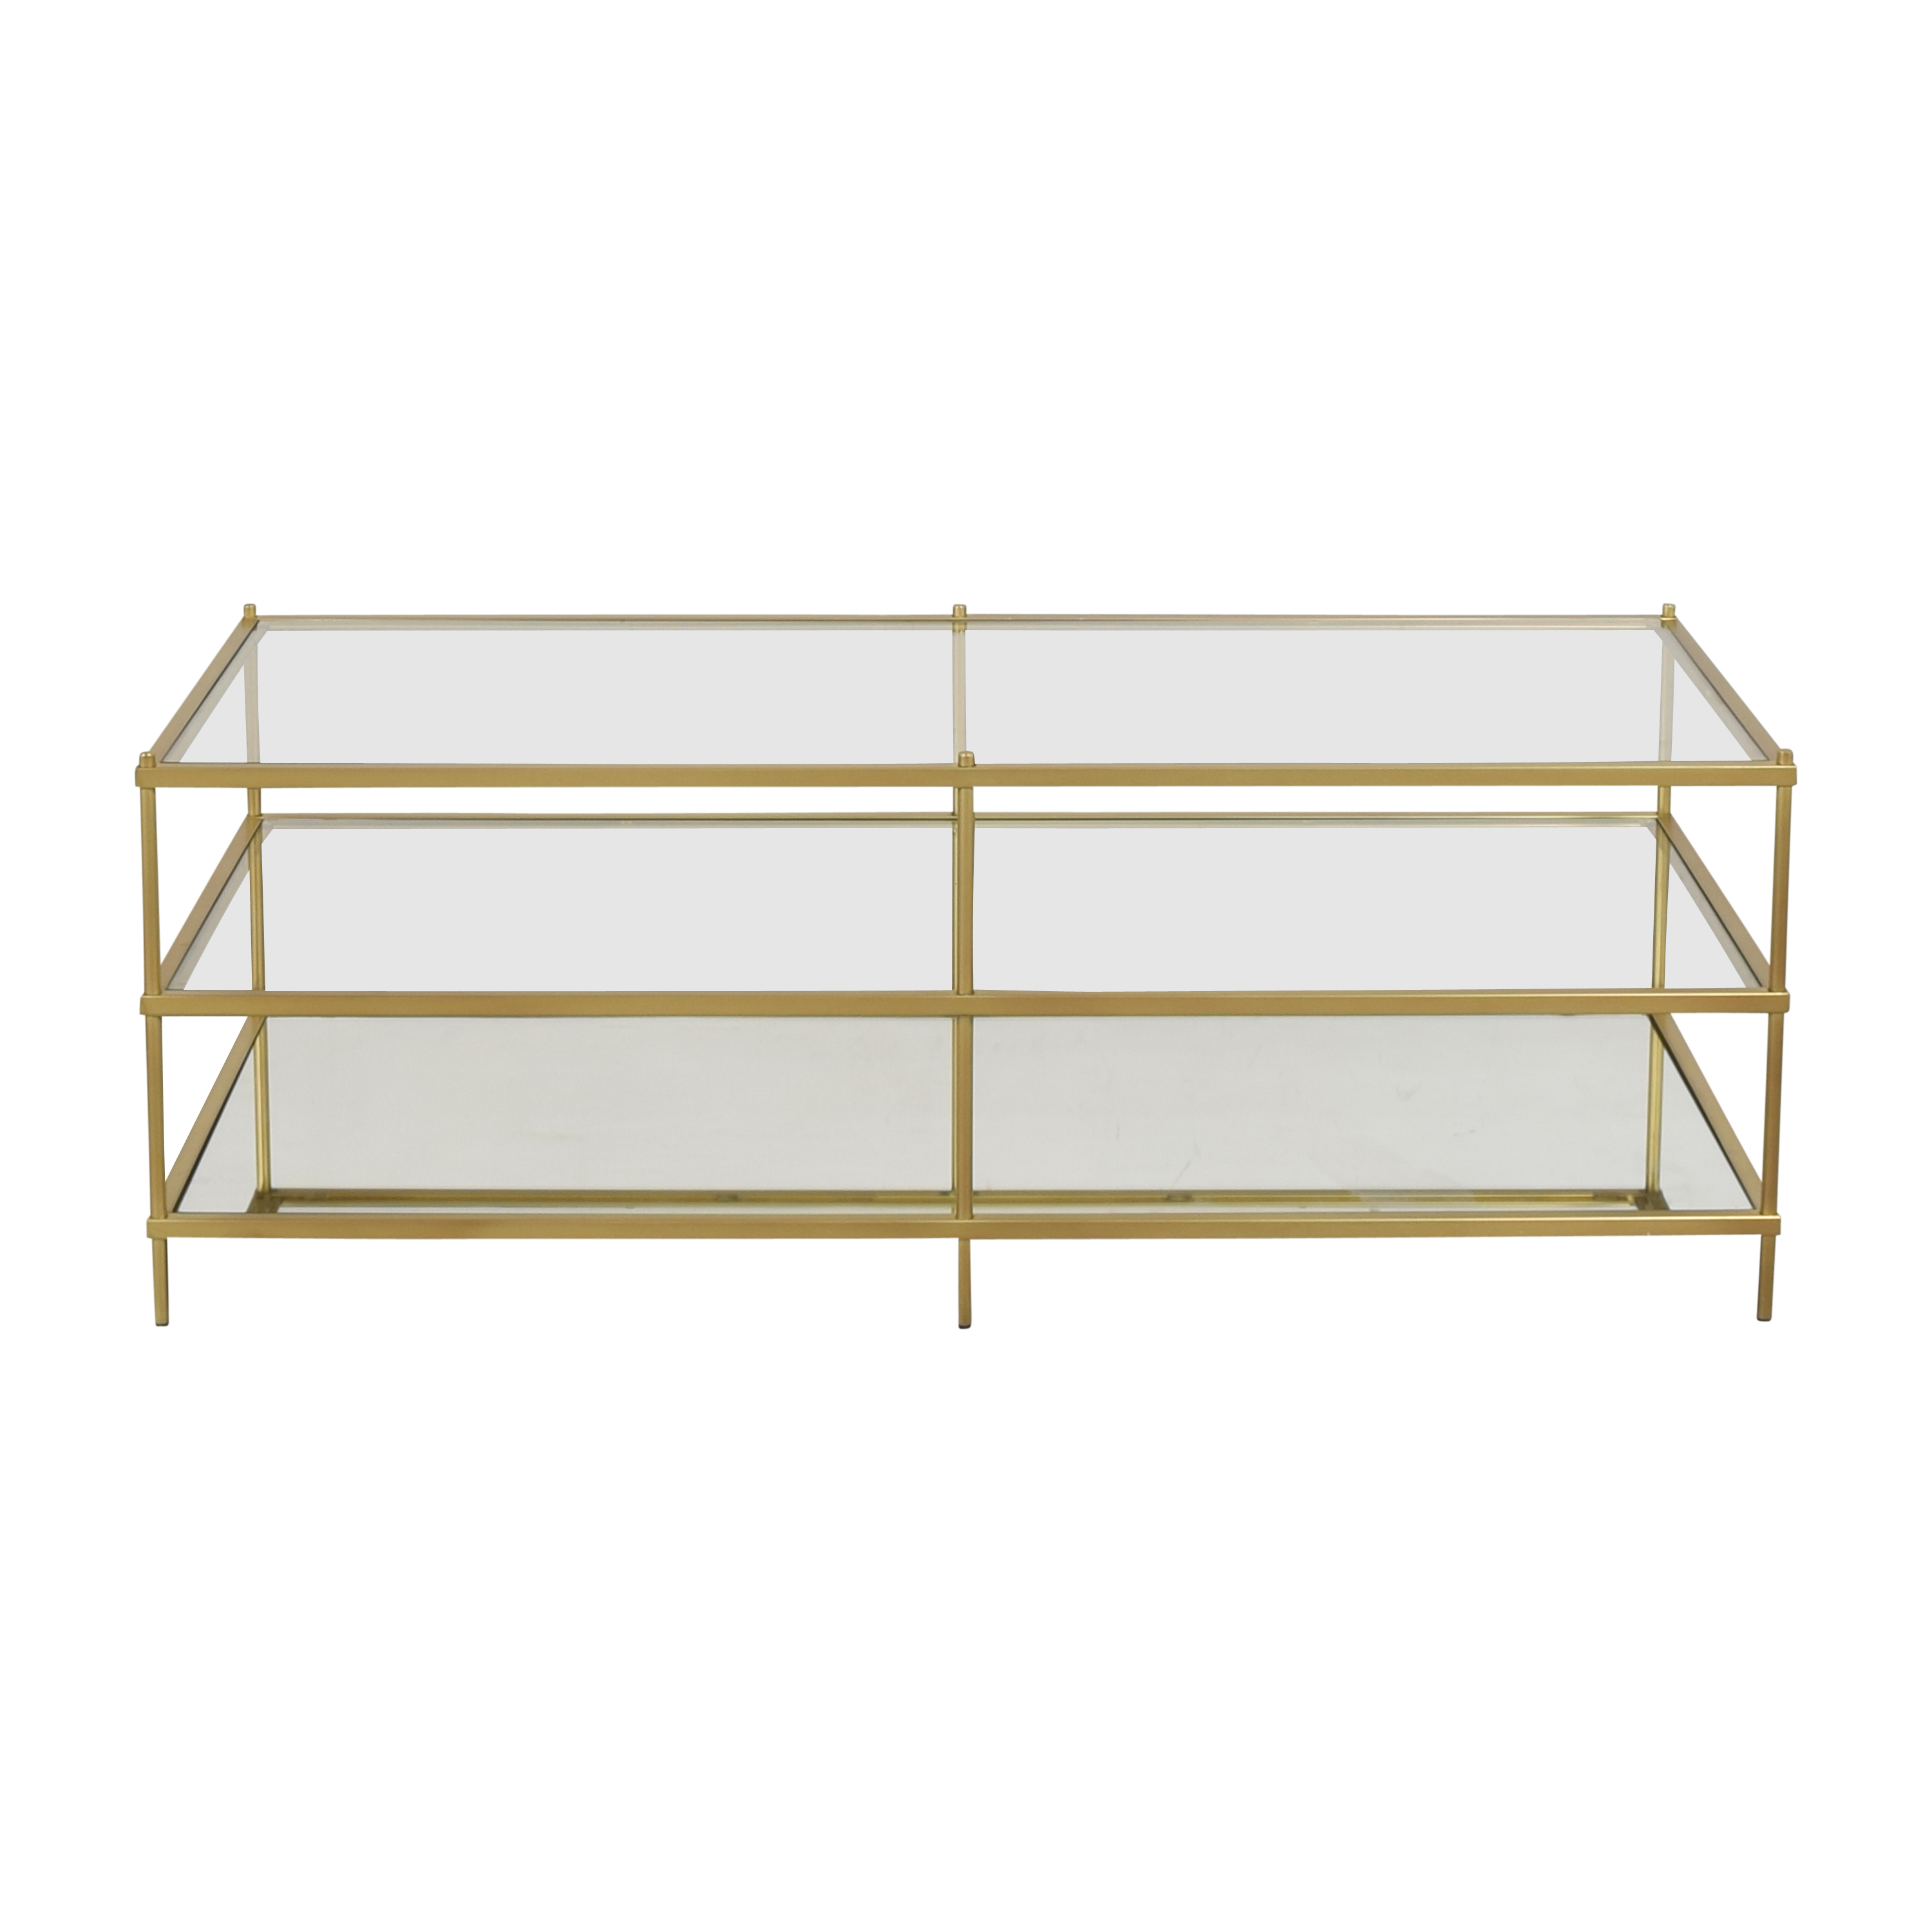 West Elm West Elm Terrace Coffee Table ma